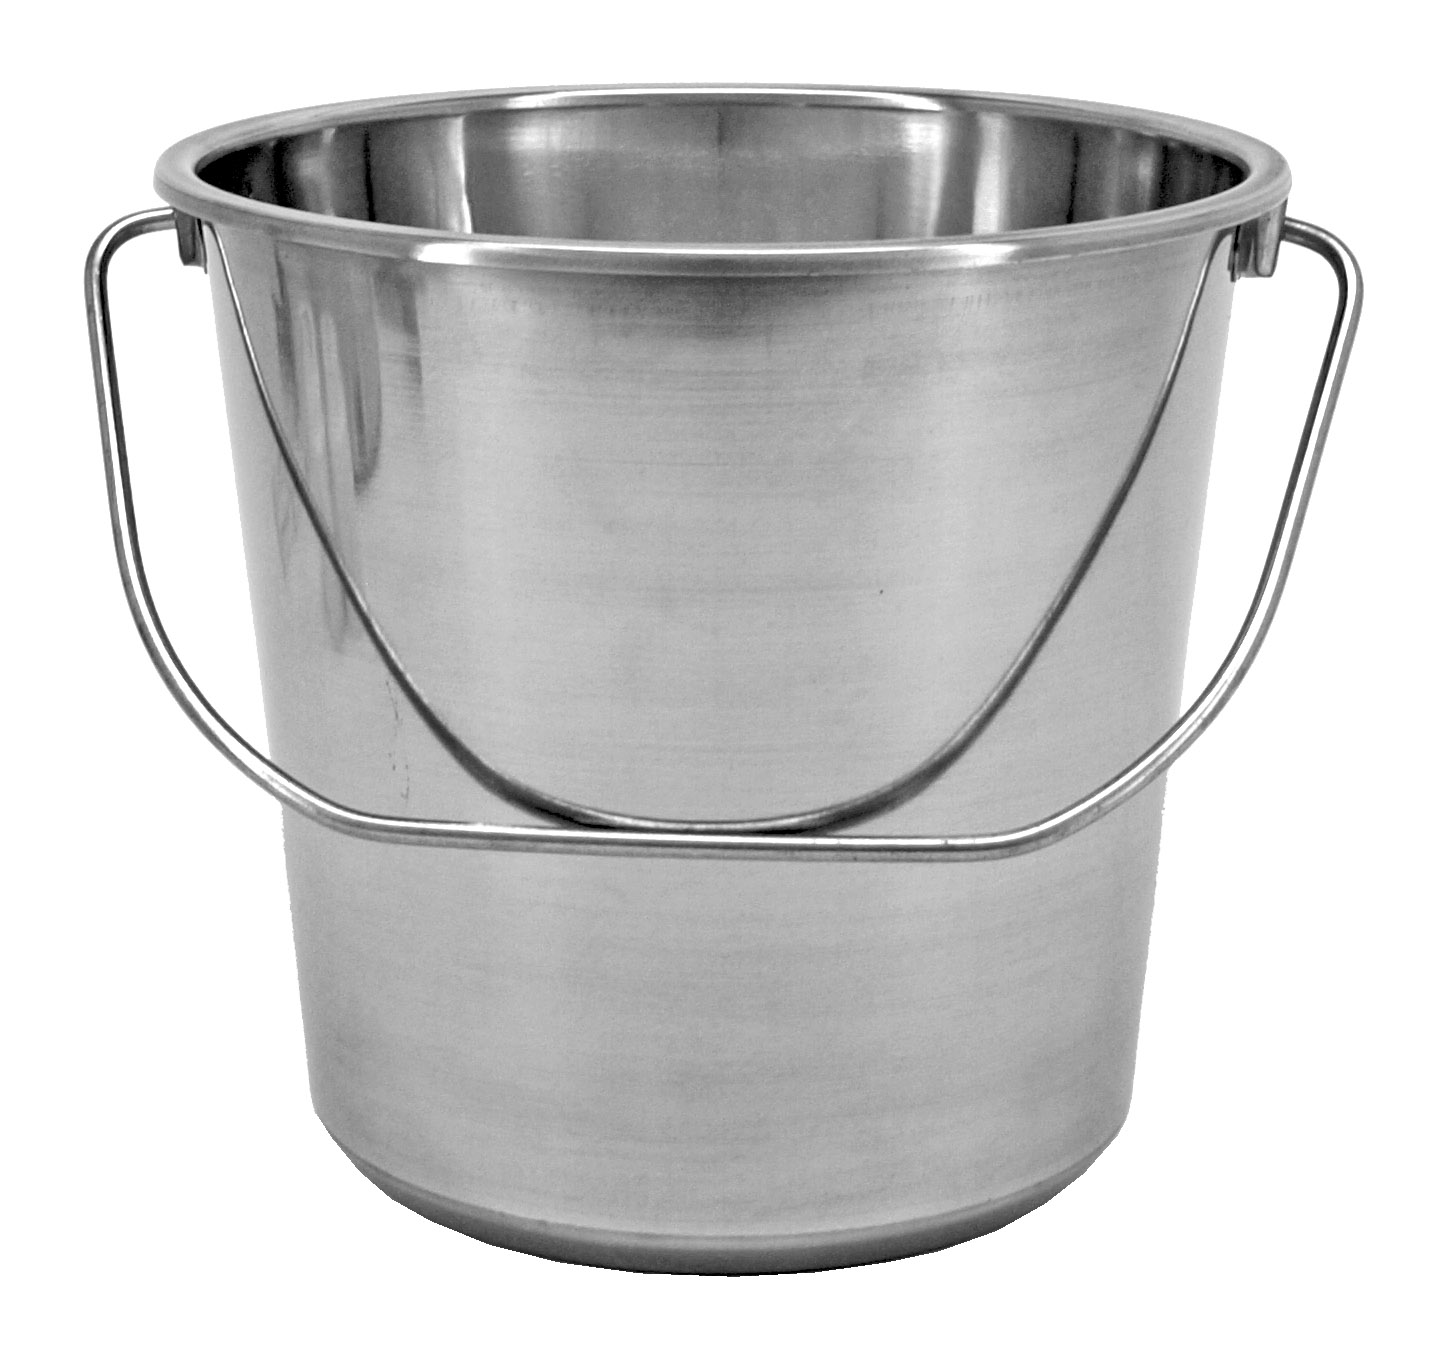 2.37 Gallon Stainless Steel Bucket